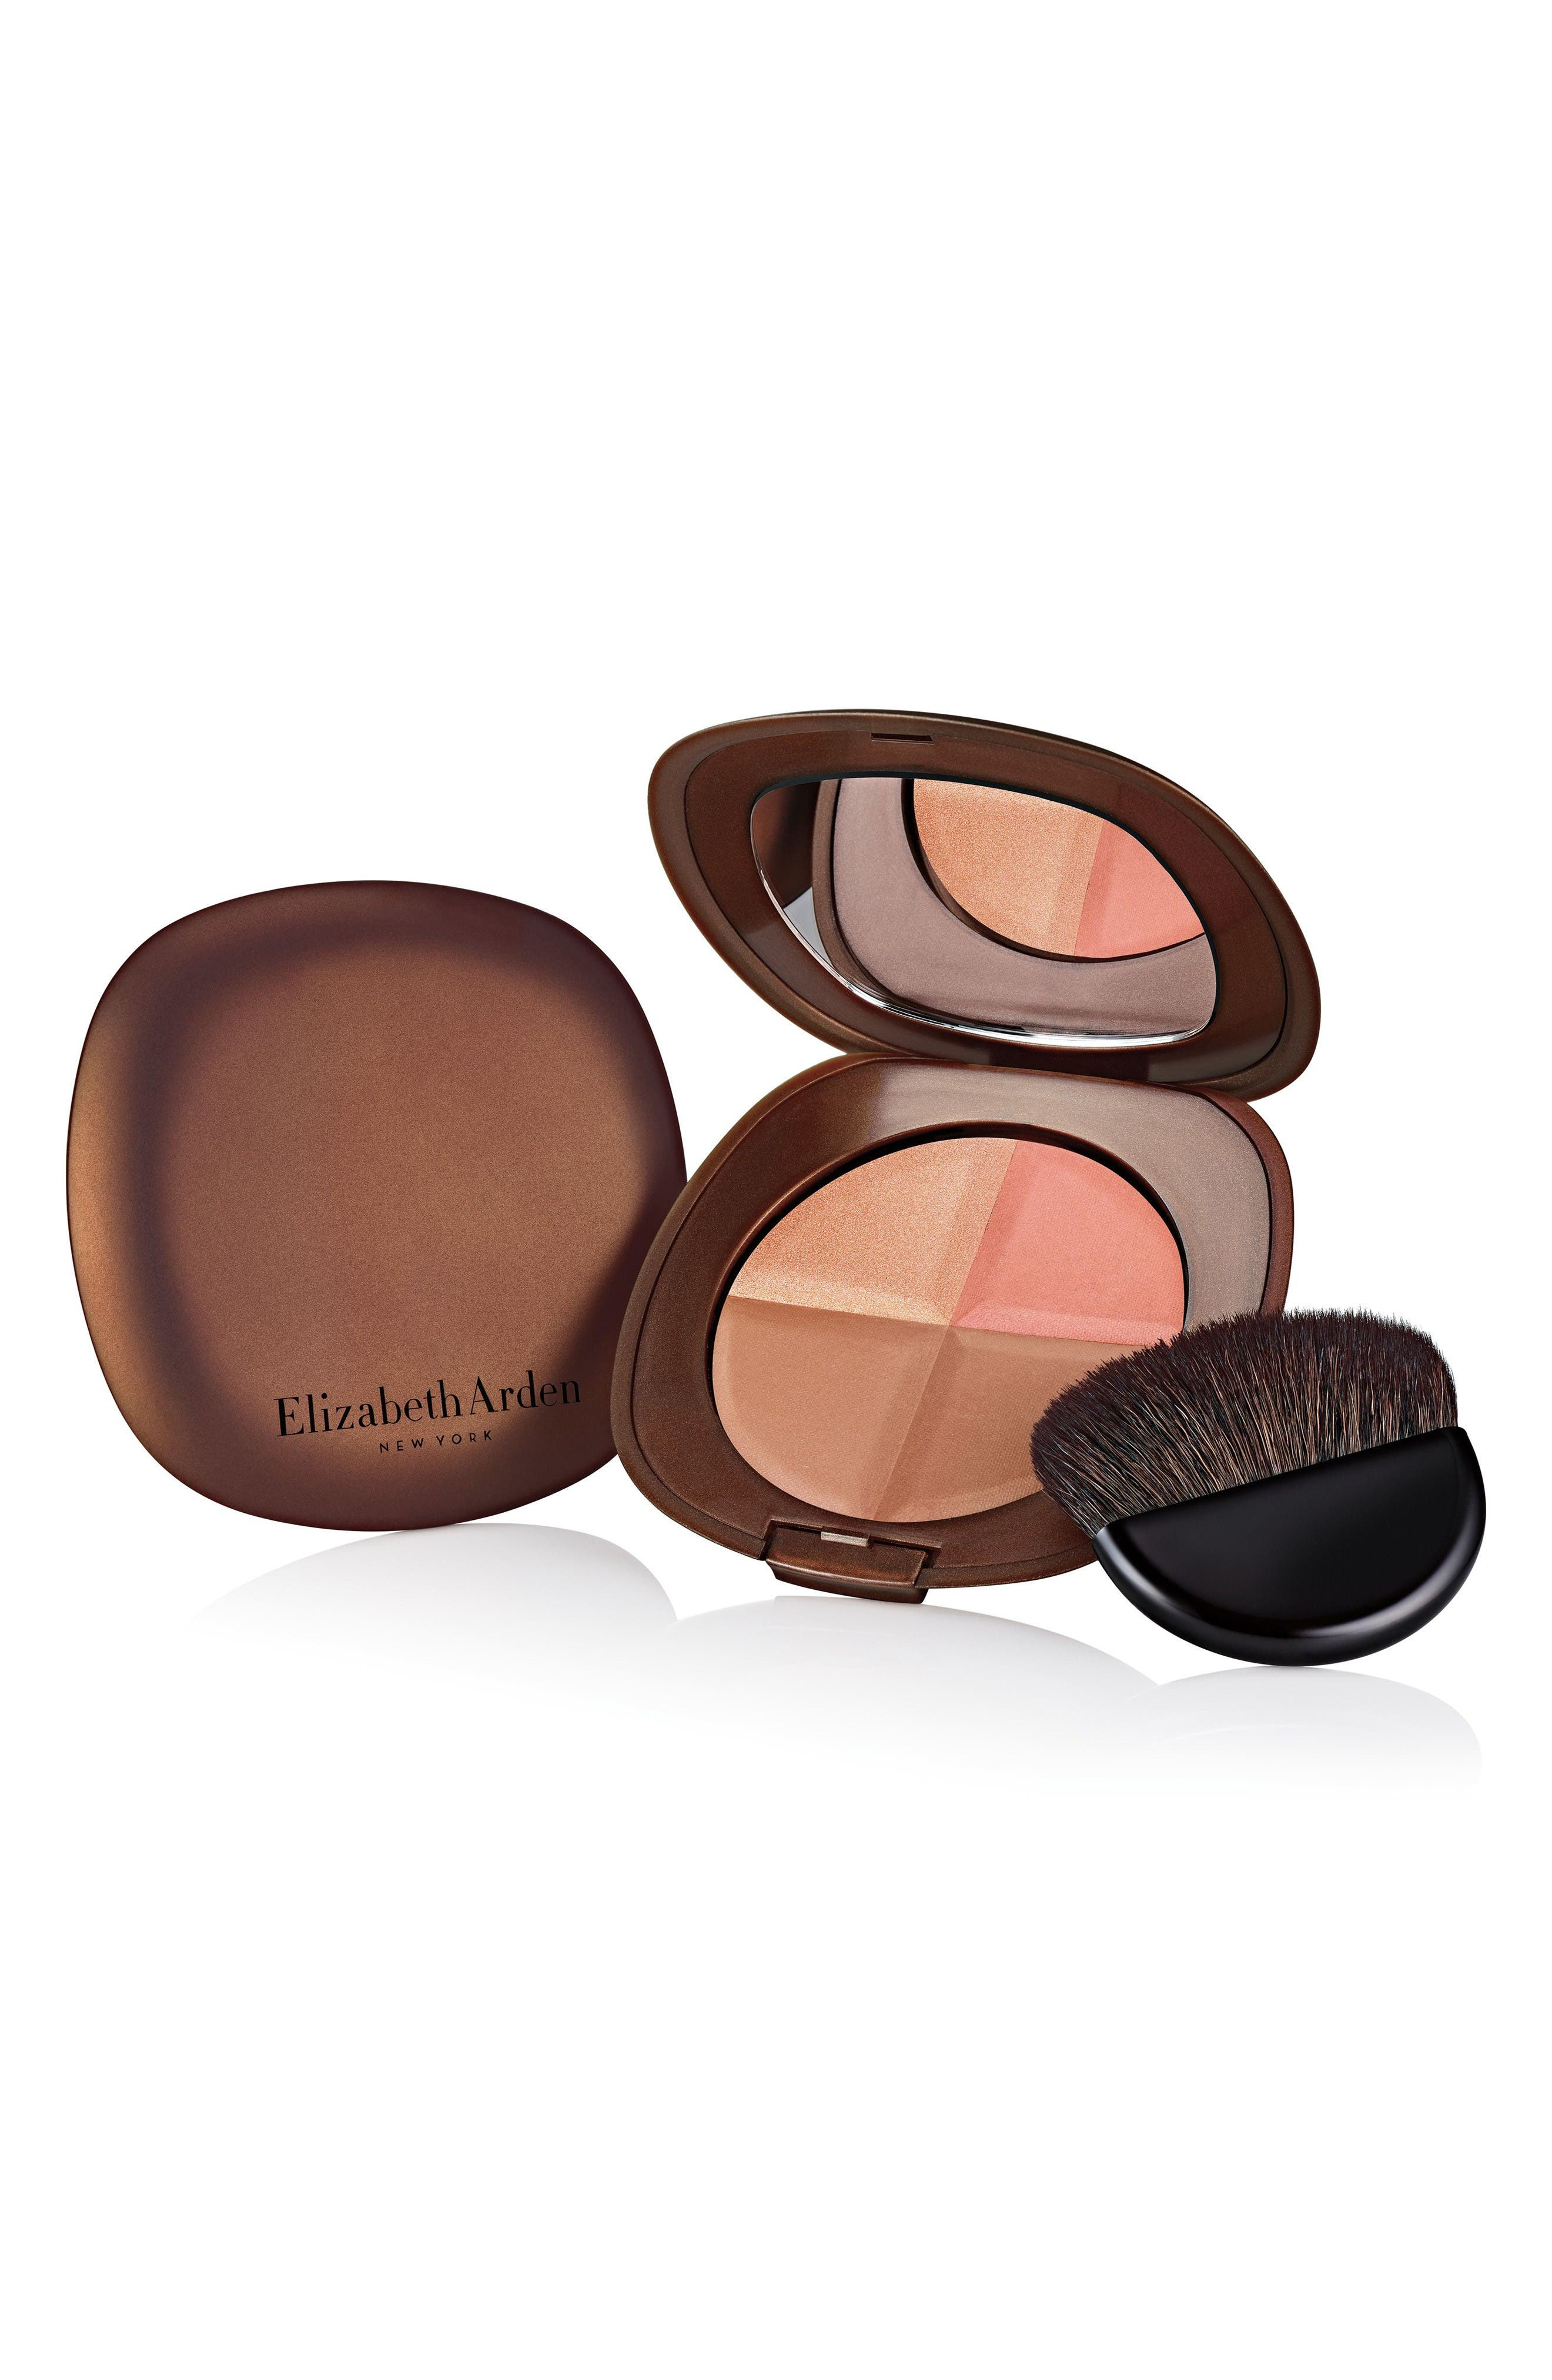 Alternate Image 1 Selected - Elizabeth Arden Tropical Escape Forever Bronzed Bronzing Powder